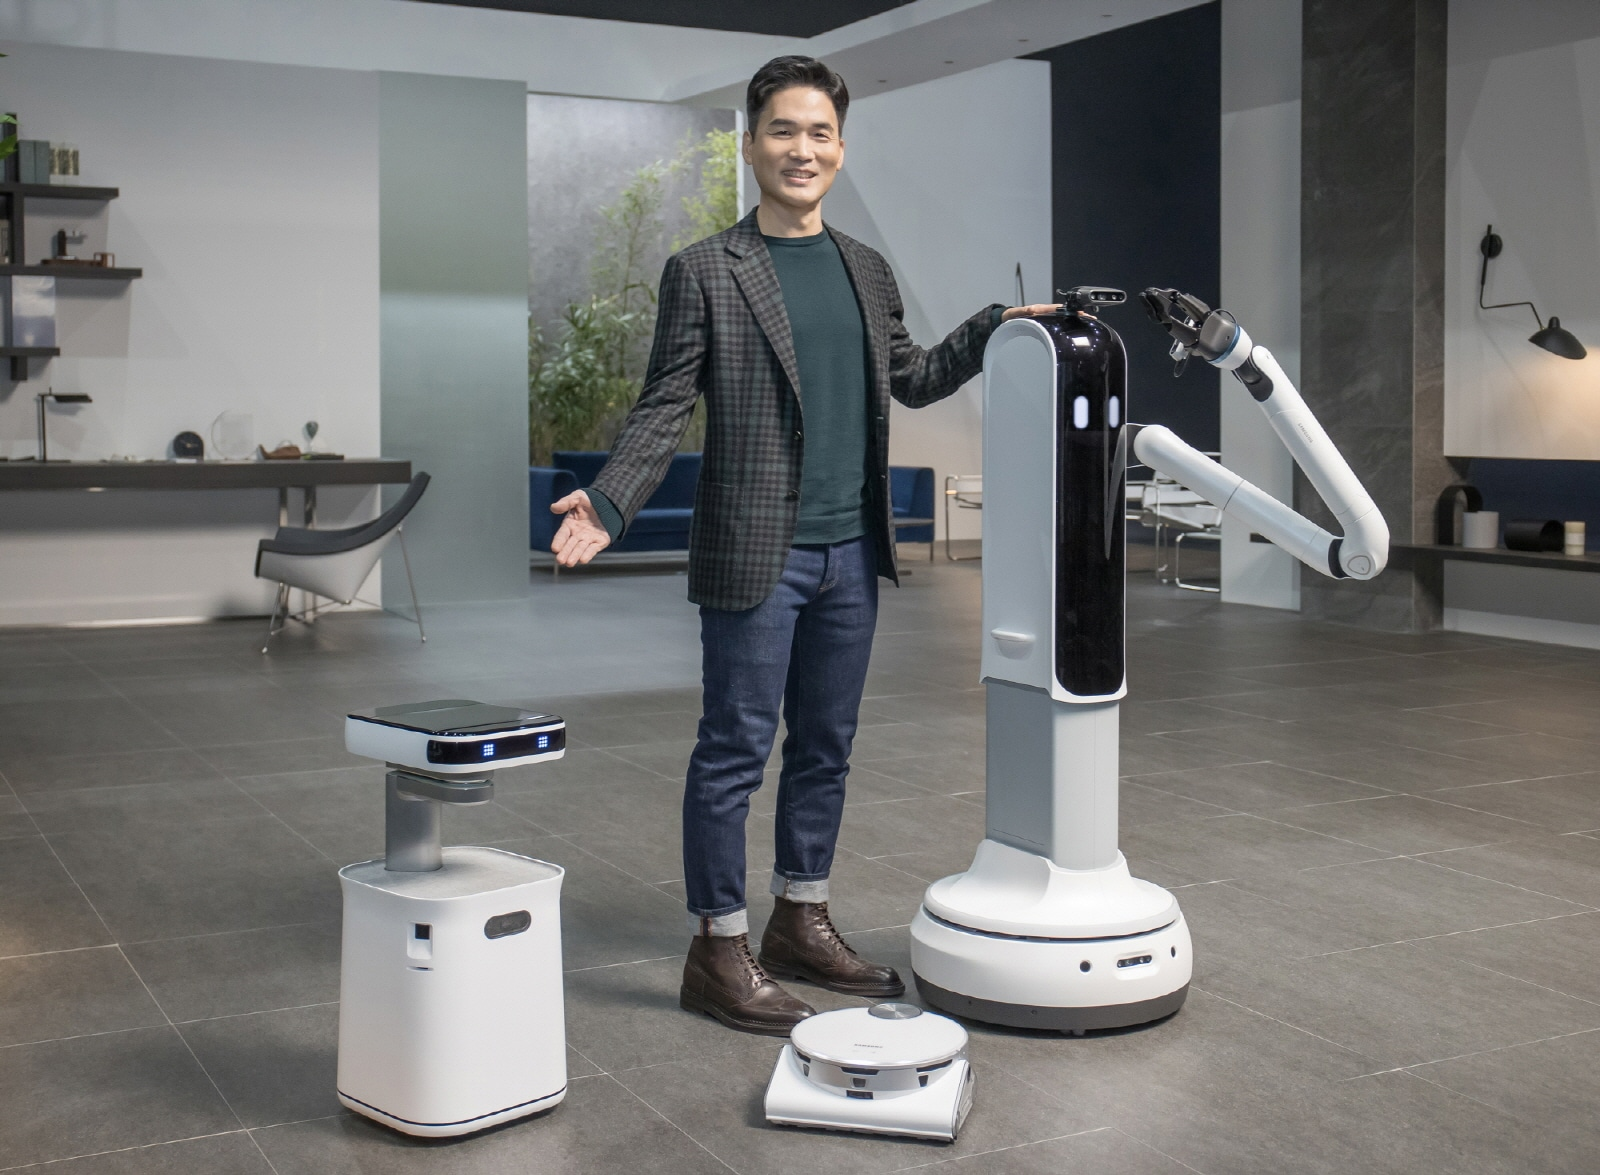 CES 2021 Samsung Press Conference Bringing AI and Robots to Daily Life